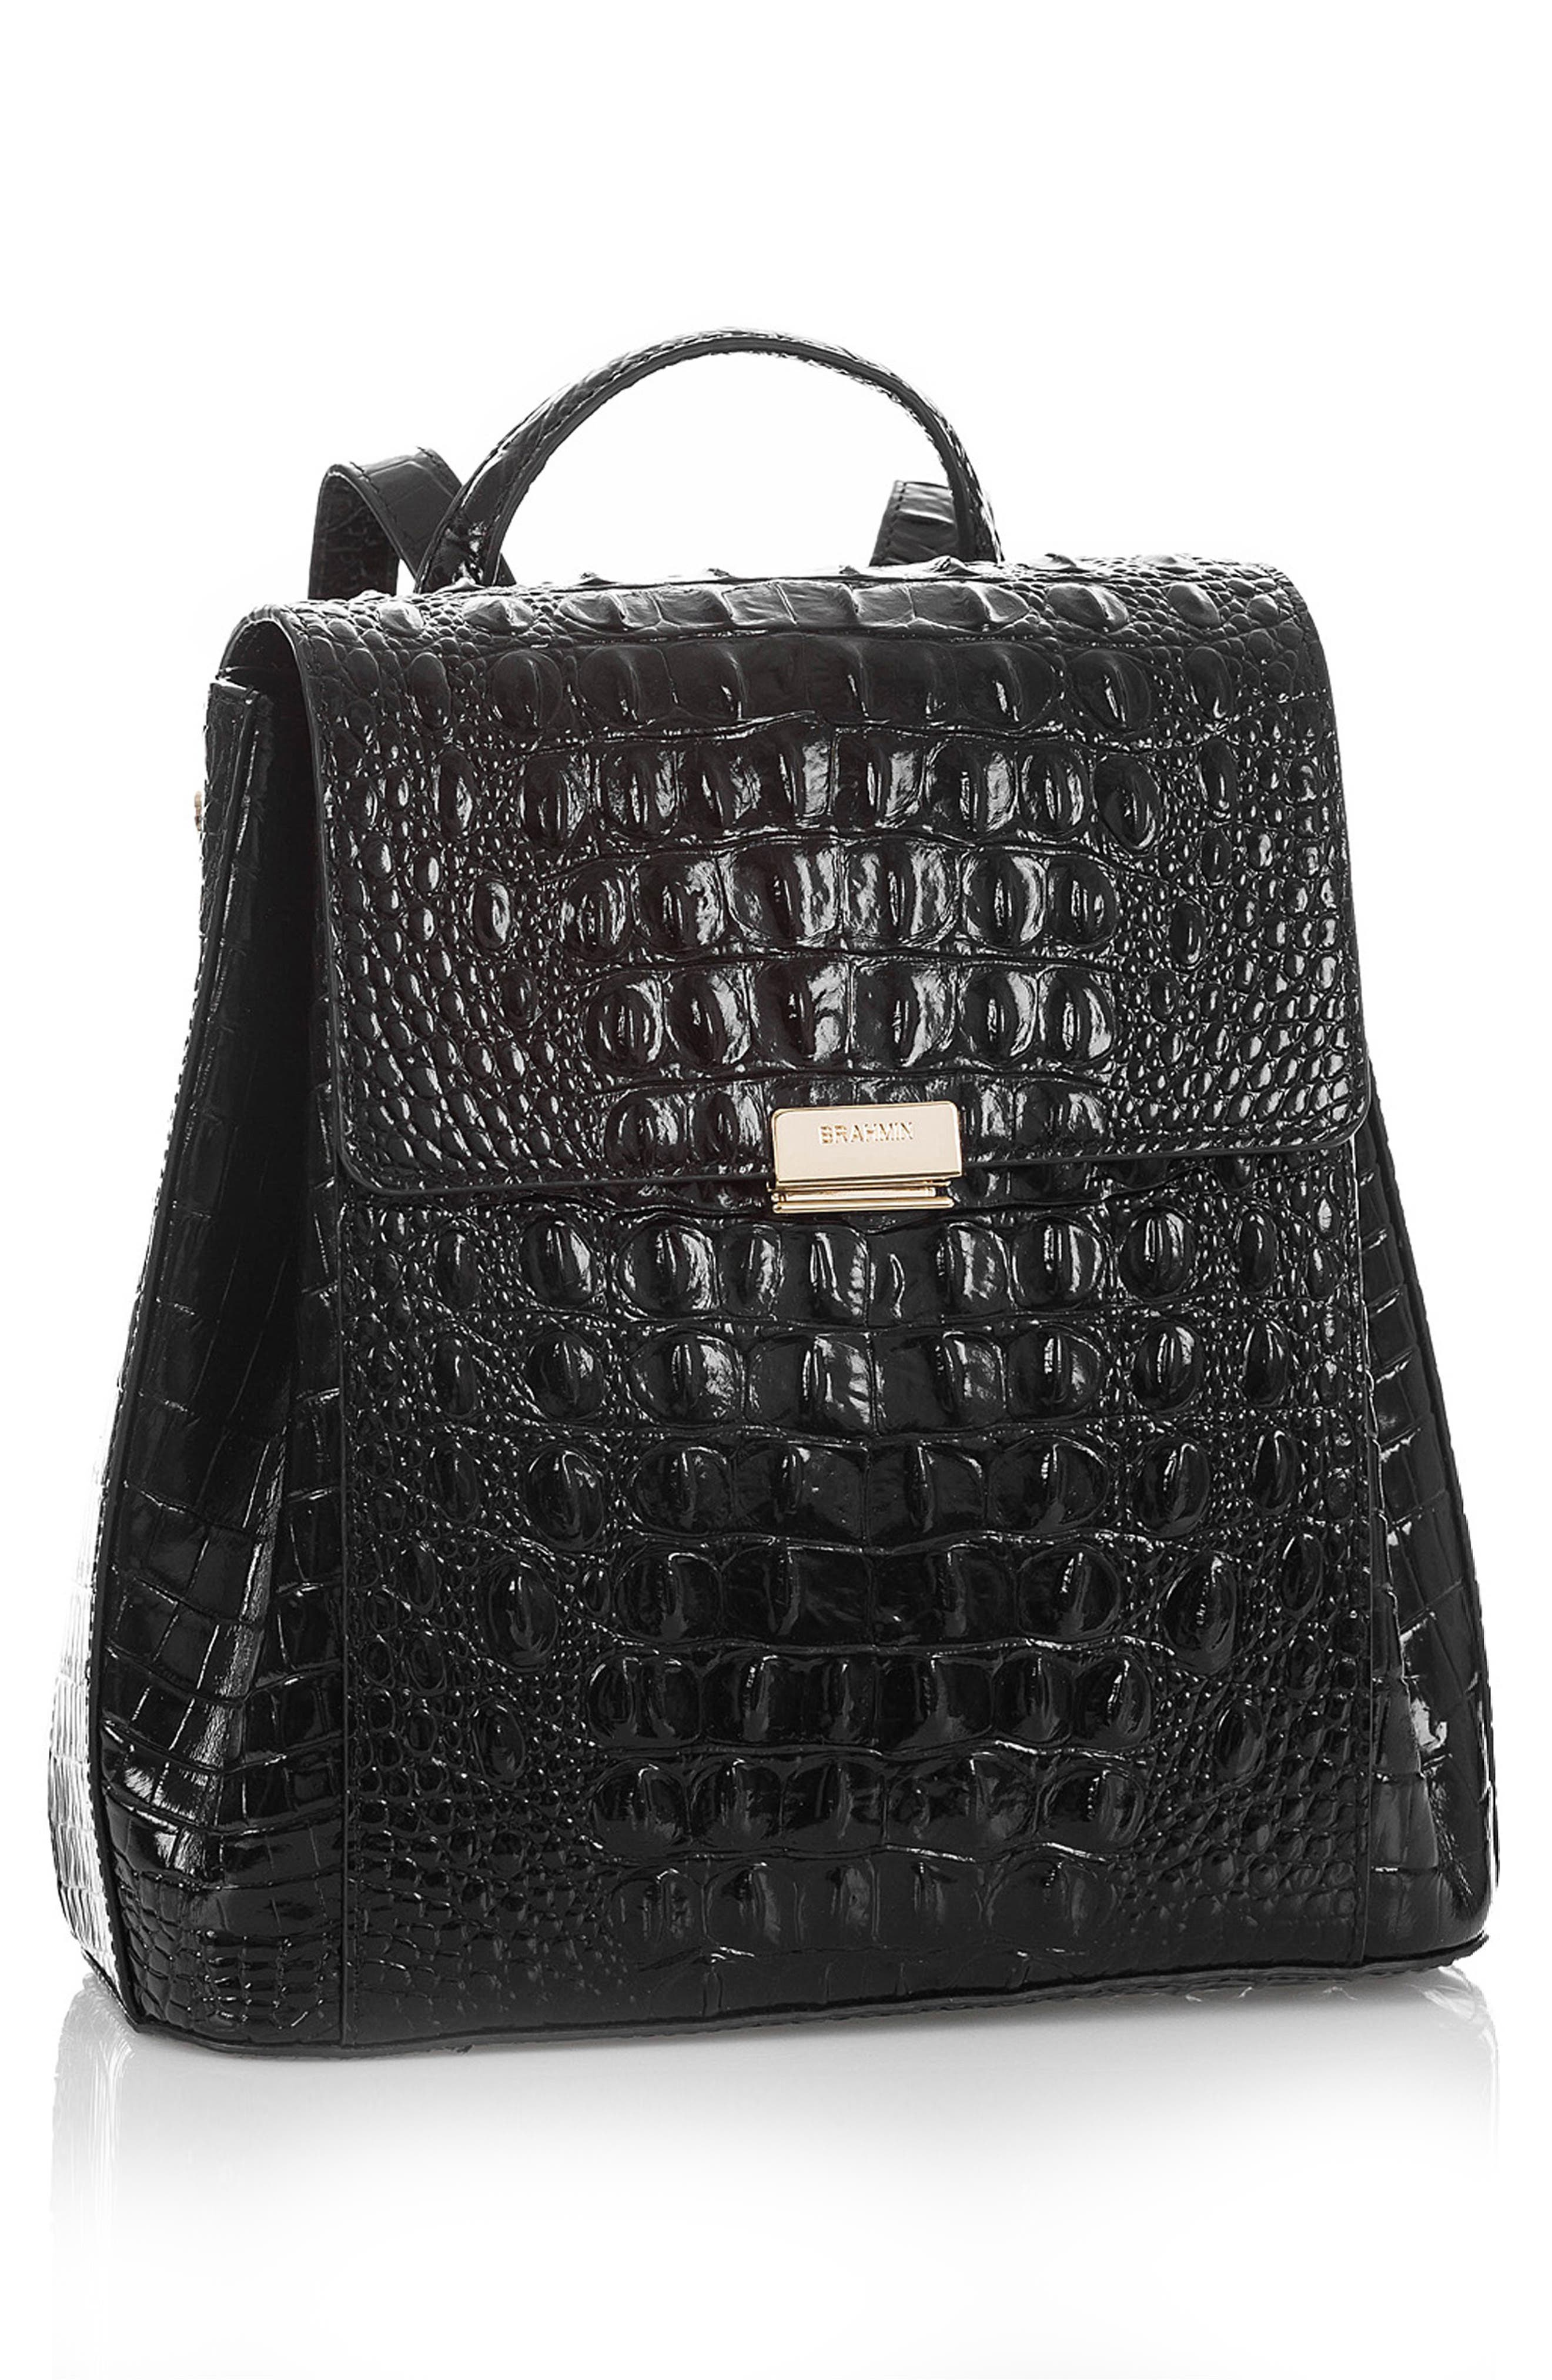 BRAHMIN, Margo Croc Embossed Leather Backpack, Alternate thumbnail 5, color, BLACK MELBOURNE